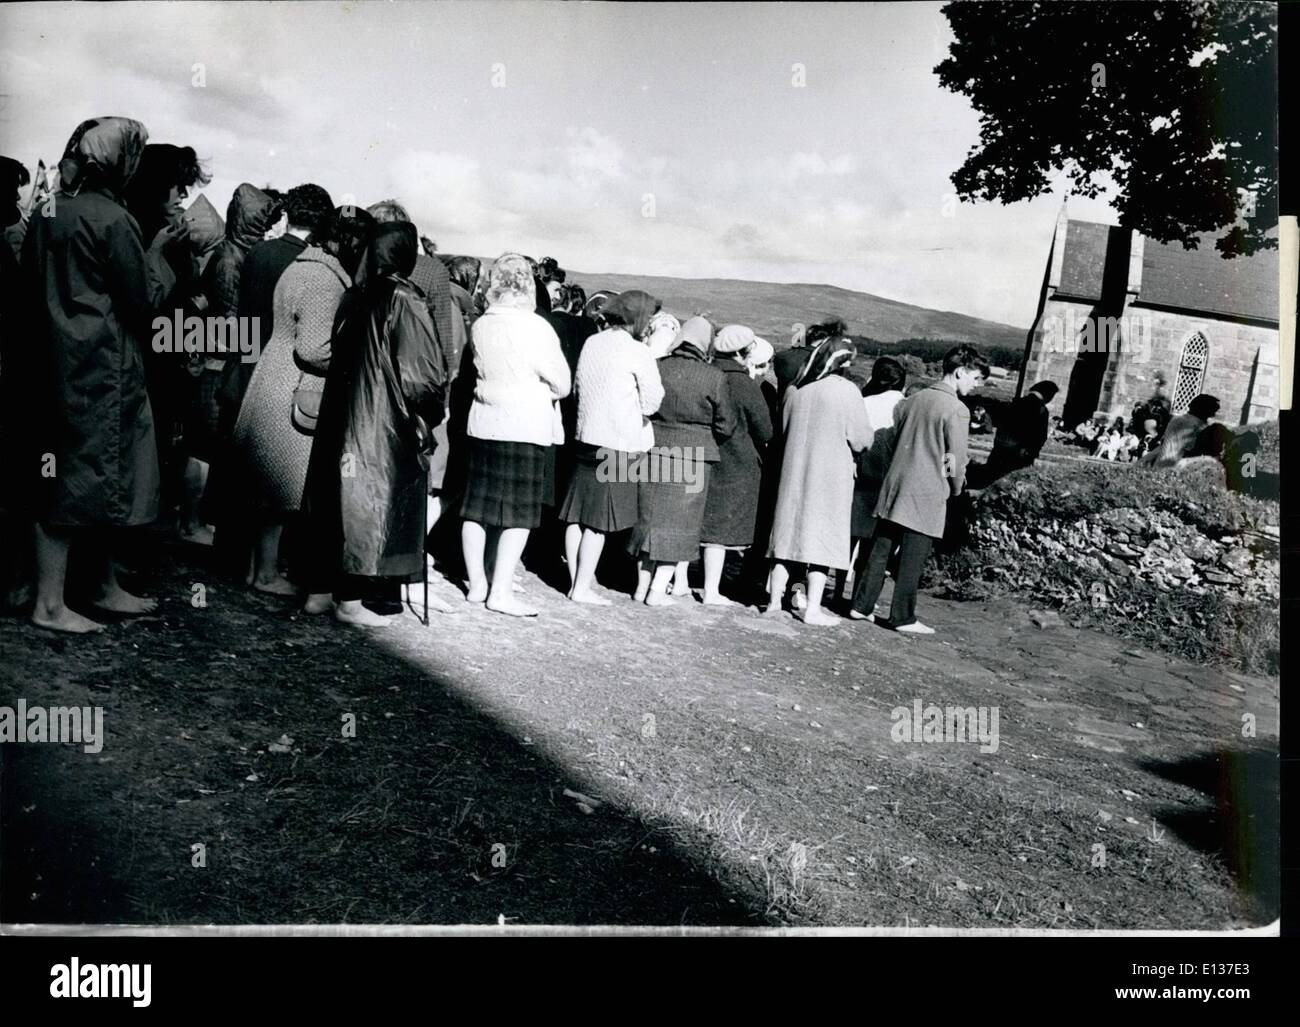 Feb. 29, 2012 - Barefooted pilgrims are seen to line up on the sombre island known as Purgatory. For three days they fast and pray before returning to the mainland. - Stock Image